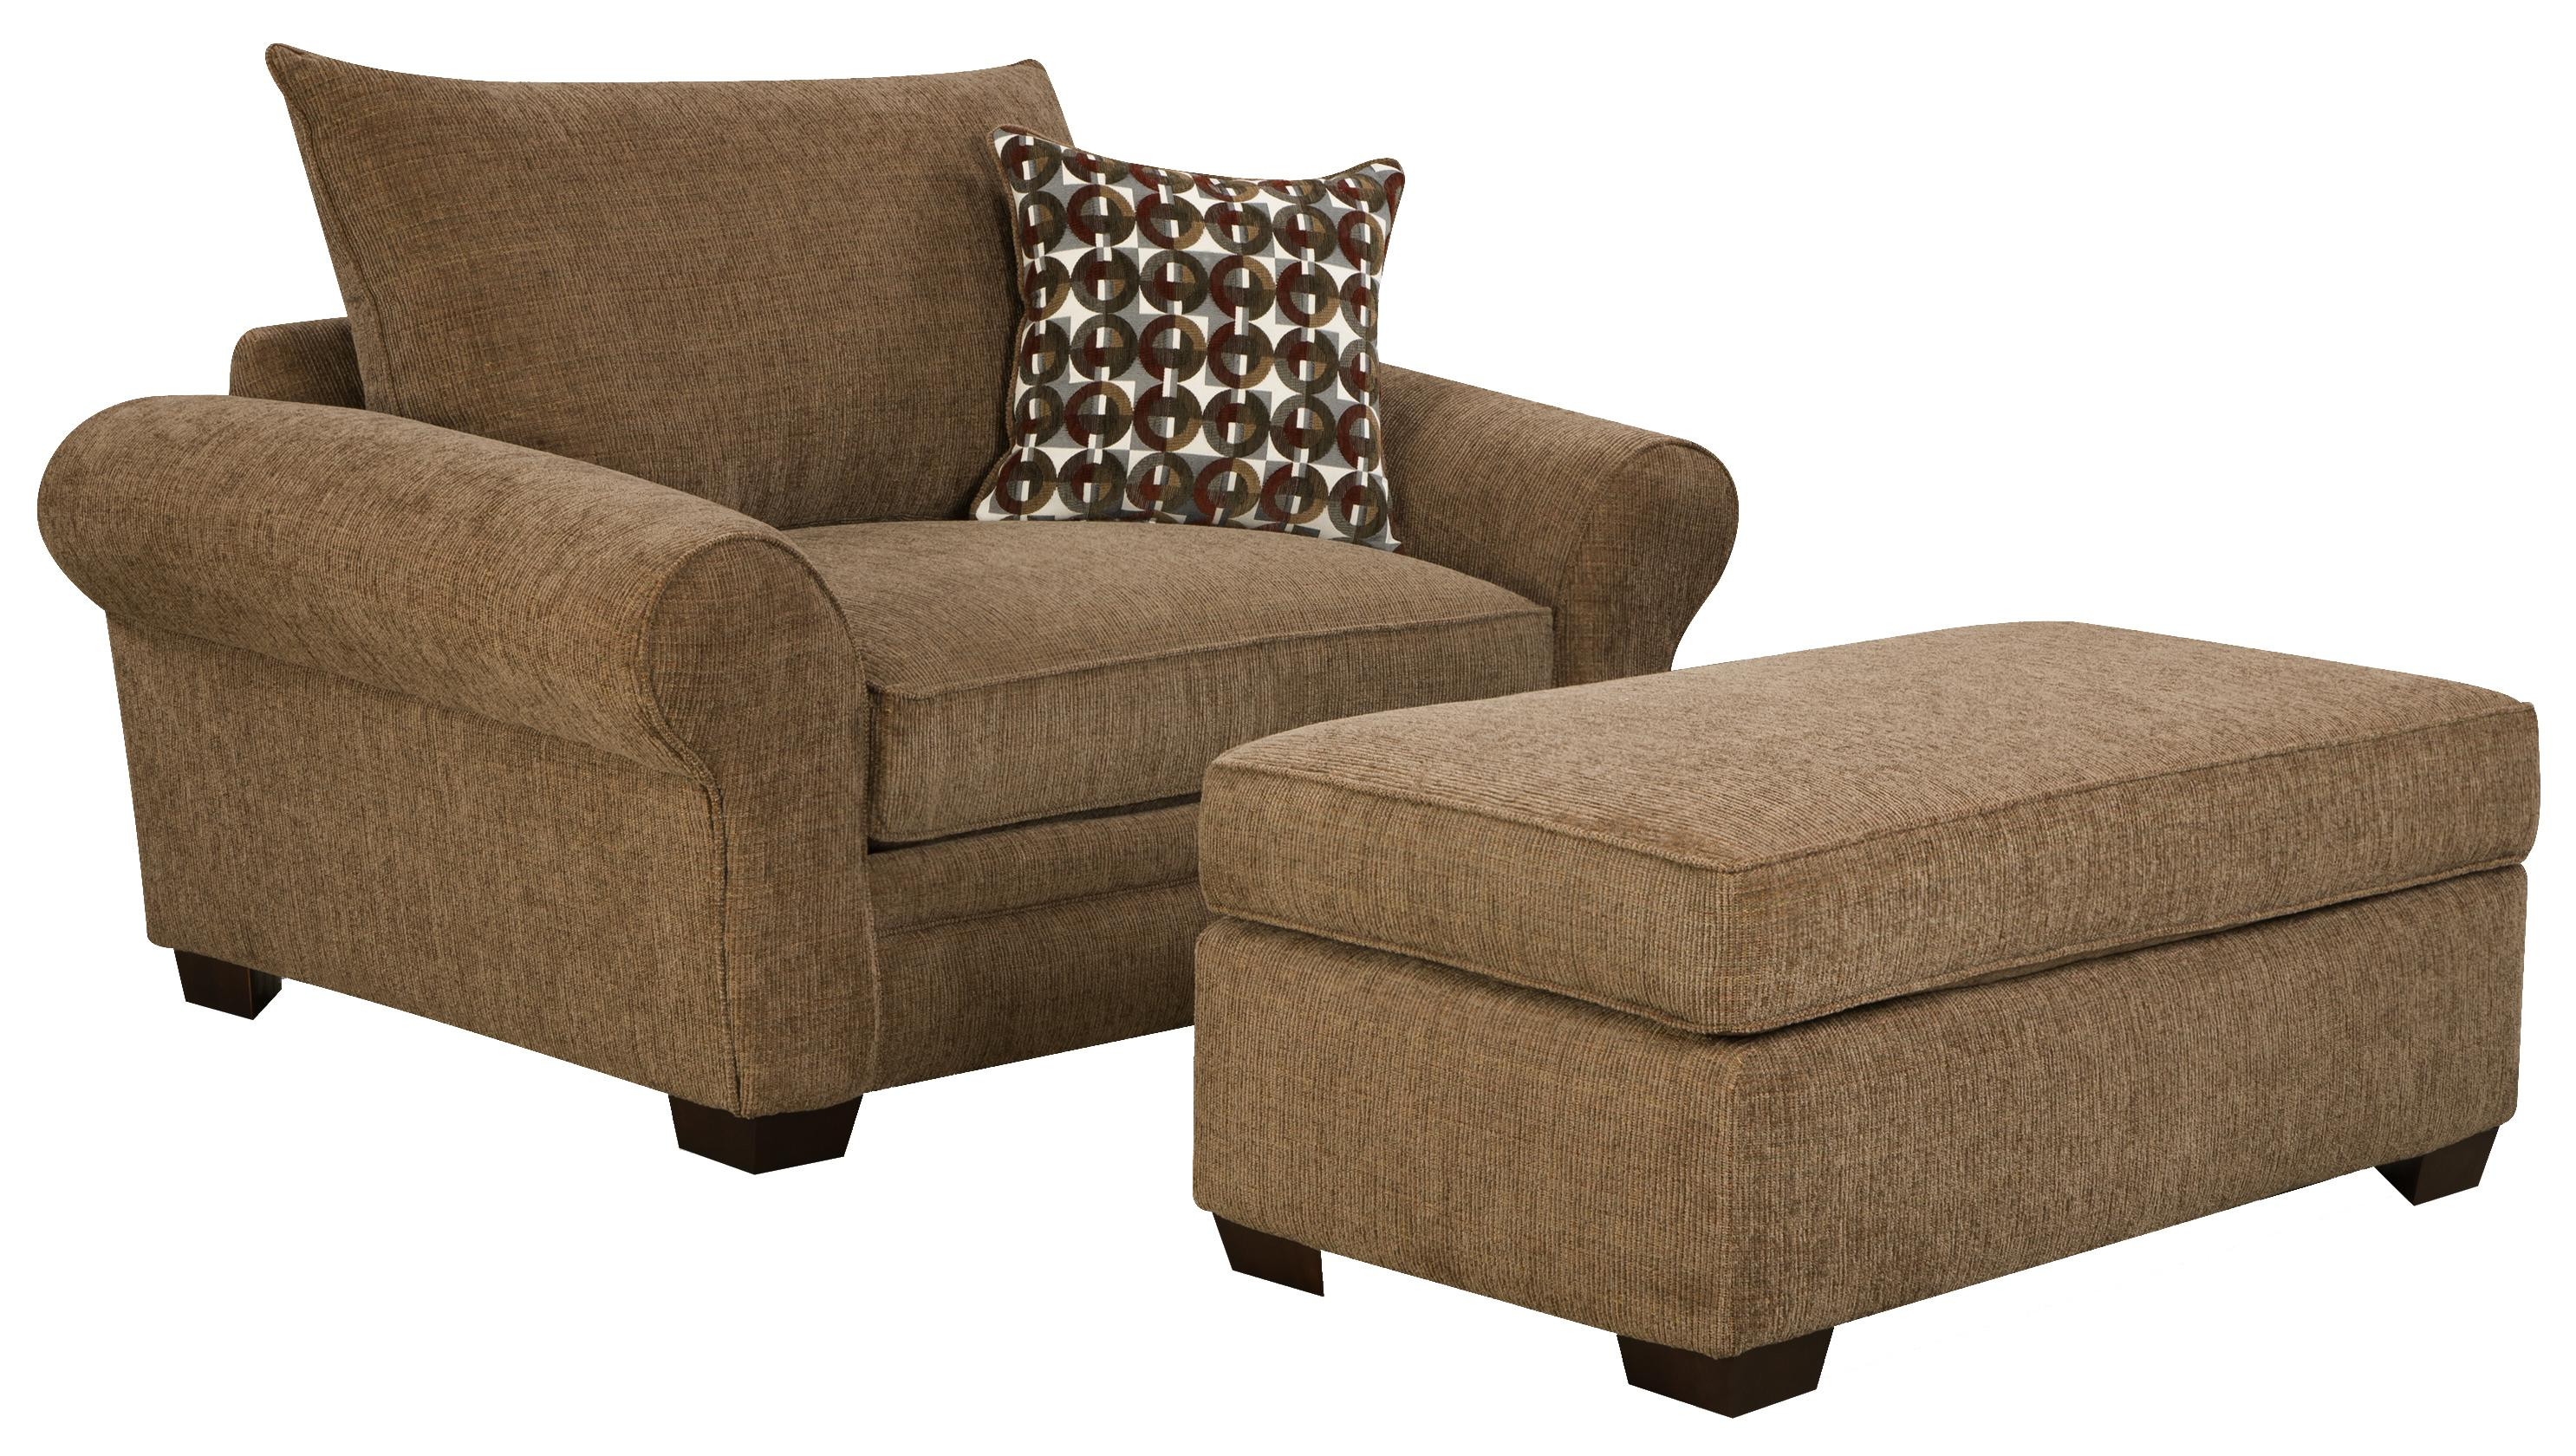 Extra Large Chair and a Half  Ottoman Set for Casual